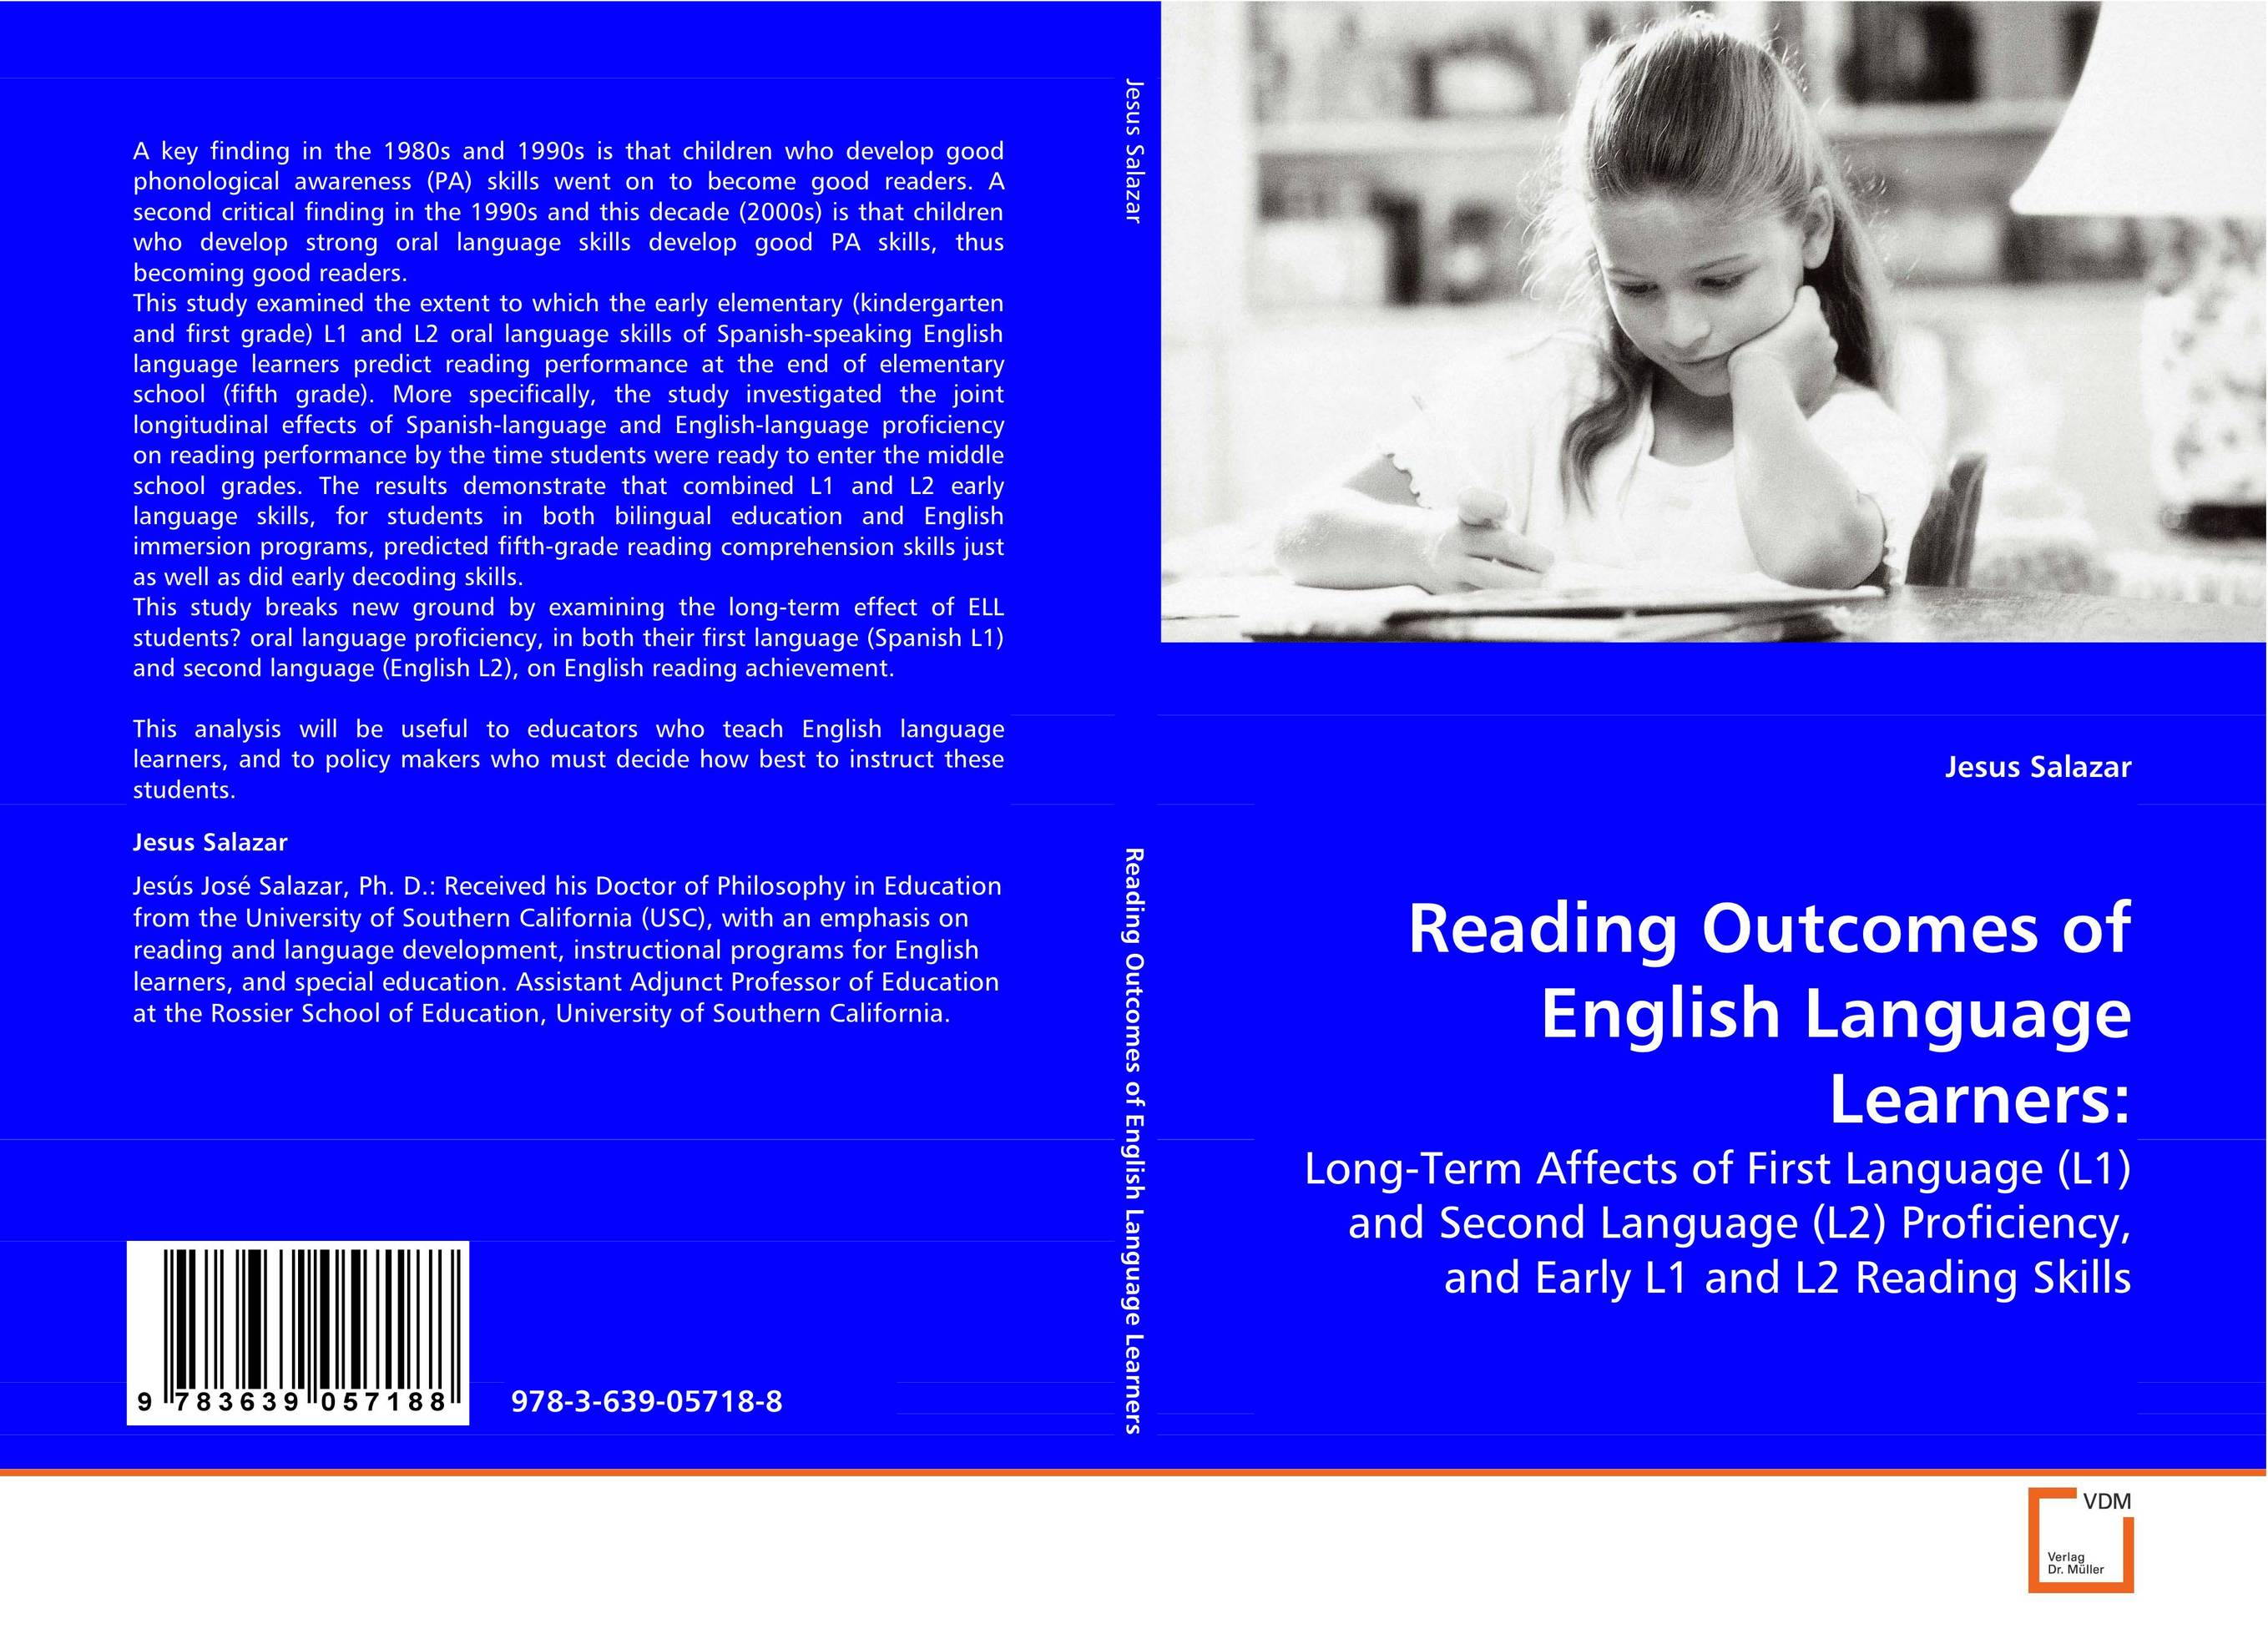 Reading Outcomes of English Language Learners: